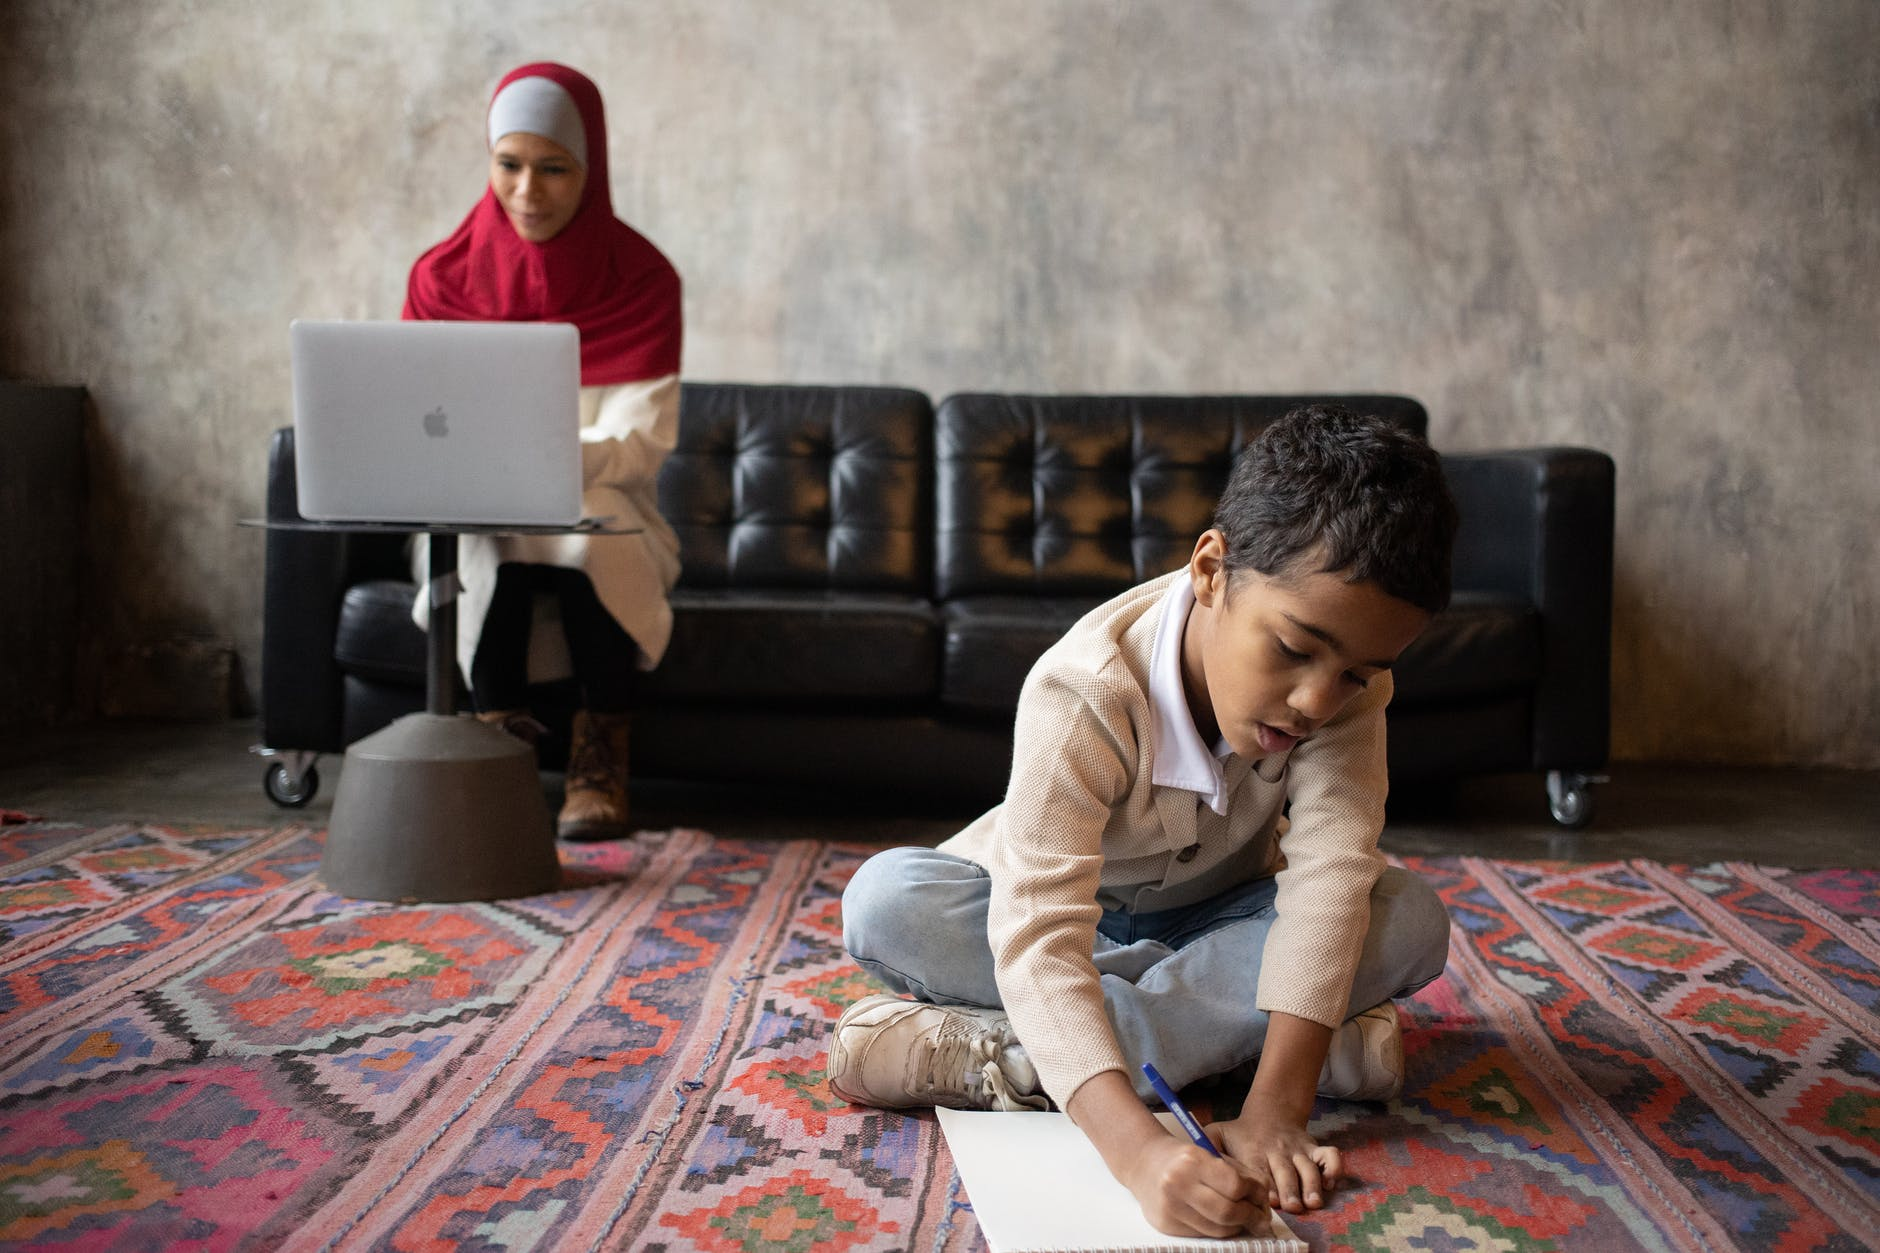 arabian mother in hijab working with laptop while son writing